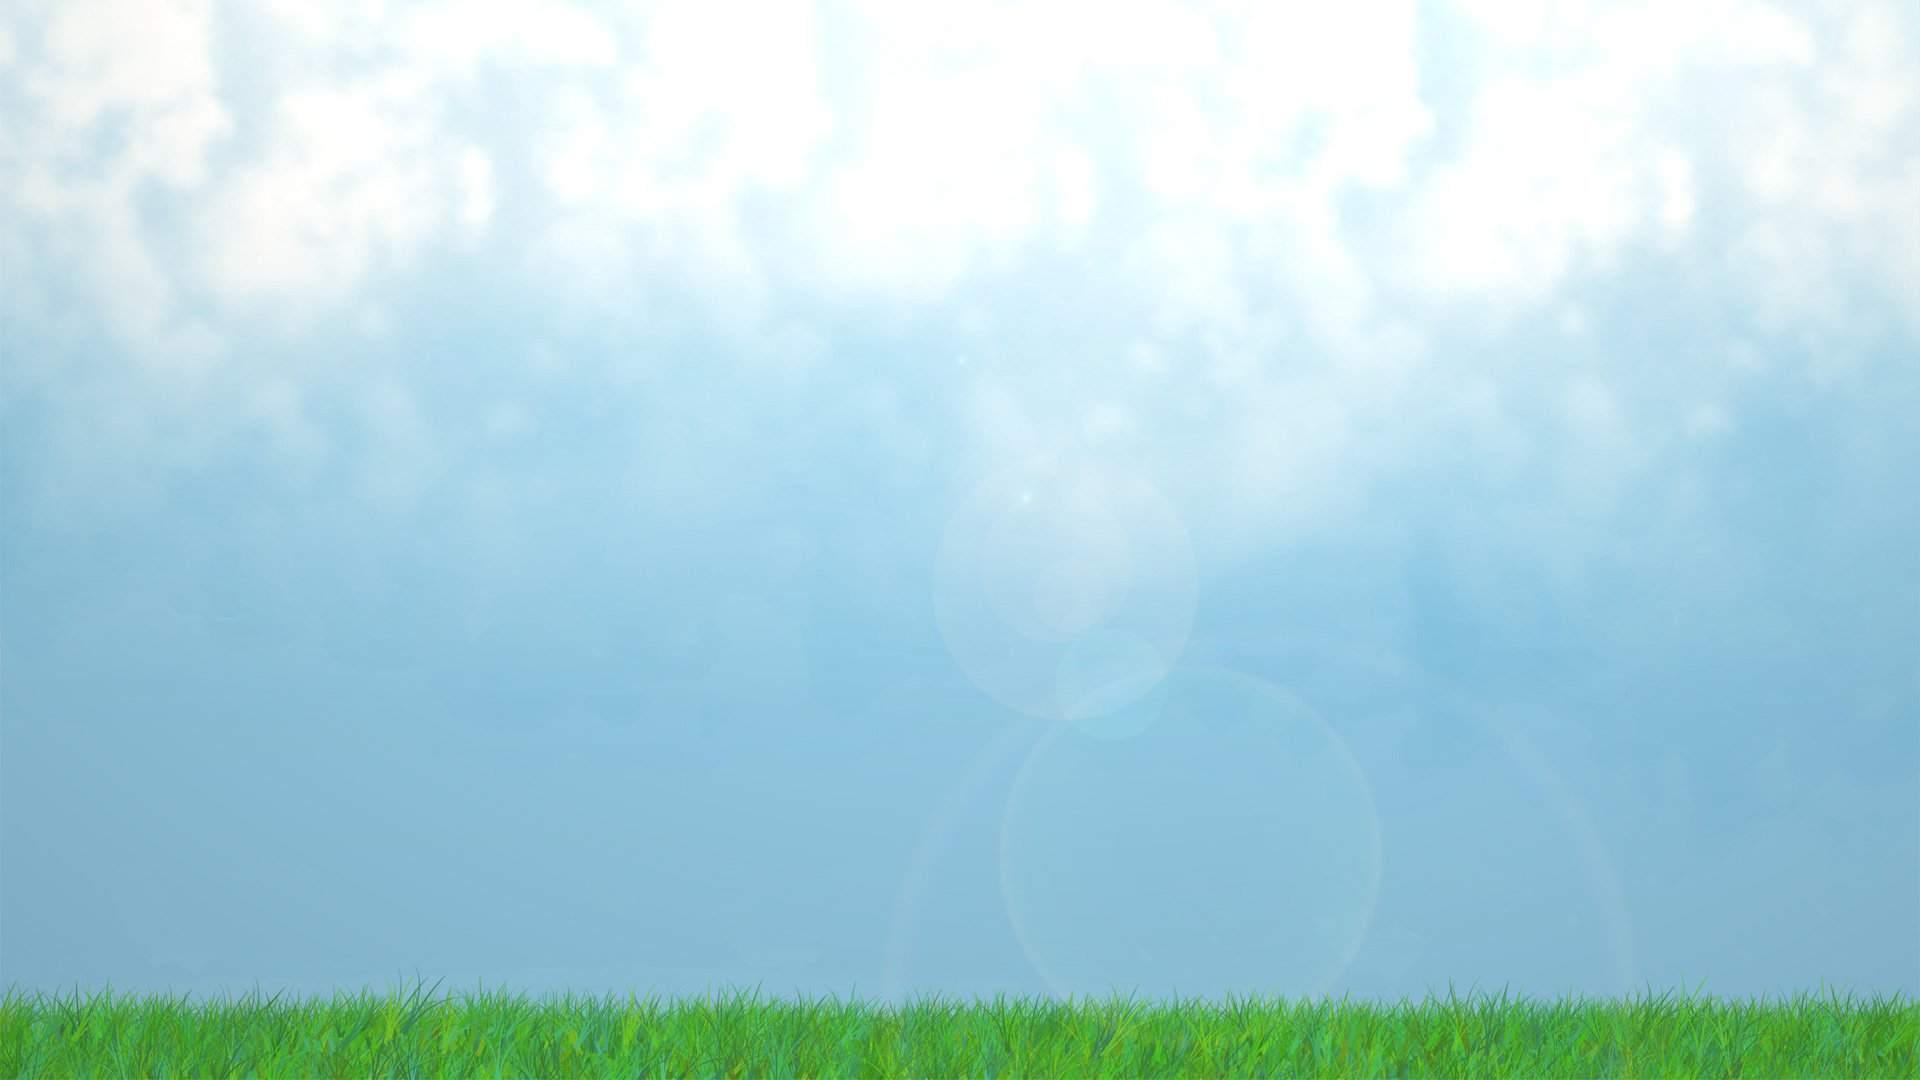 Grass with solid blue sky clipart.